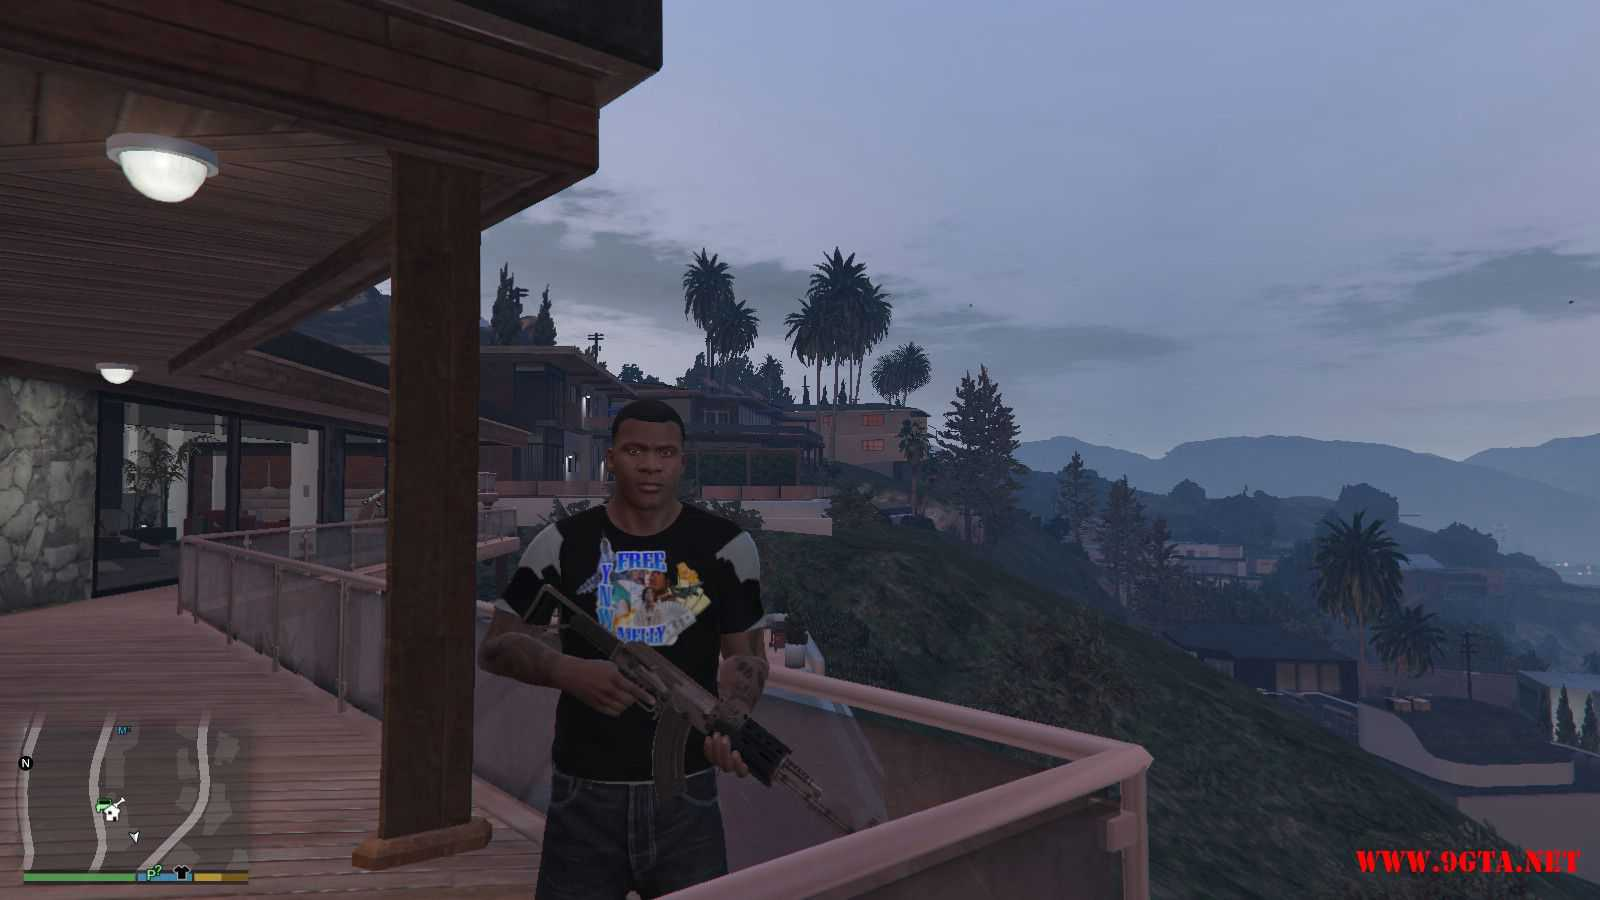 Free YNW Melly T-Shirt GTA5 Mods (5)